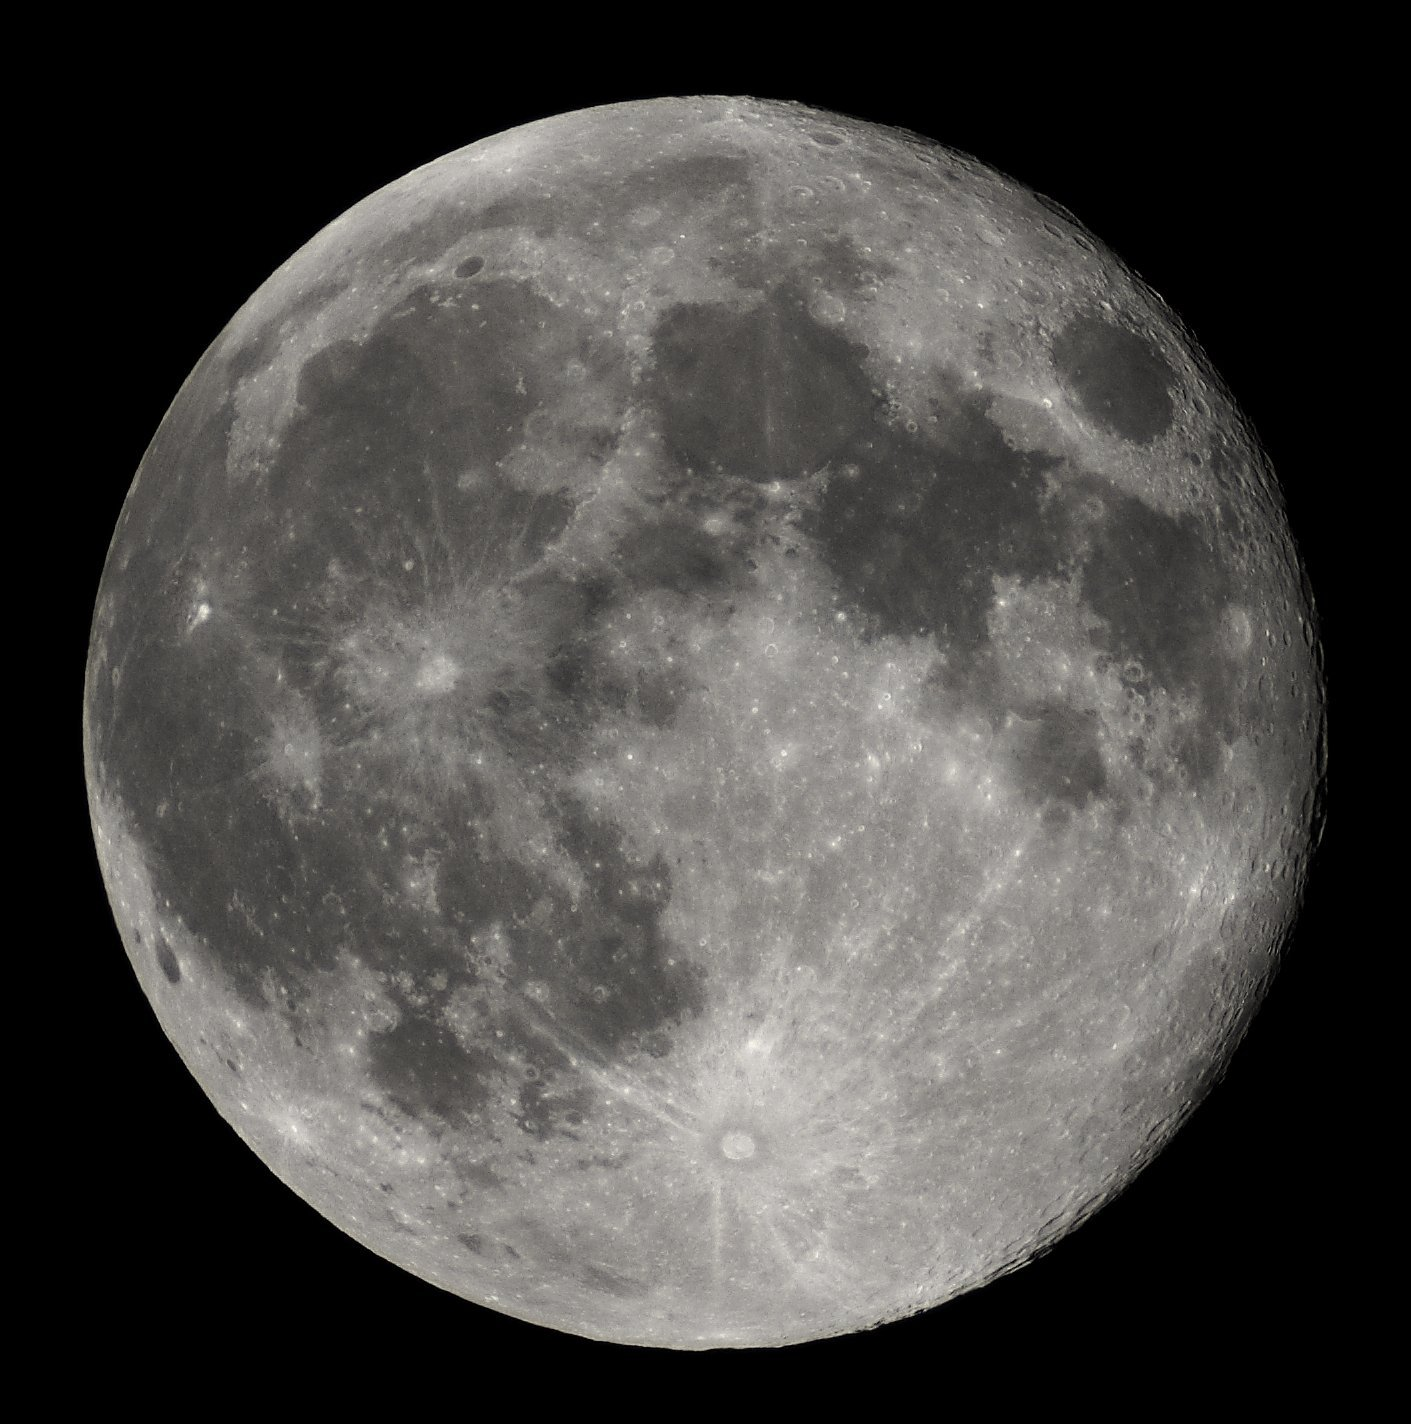 Nearly Full Moon view from Earth in Belgium, Hamois, on October 7, 2006 | Photo: Wikimedia Commons/Luc Viatour